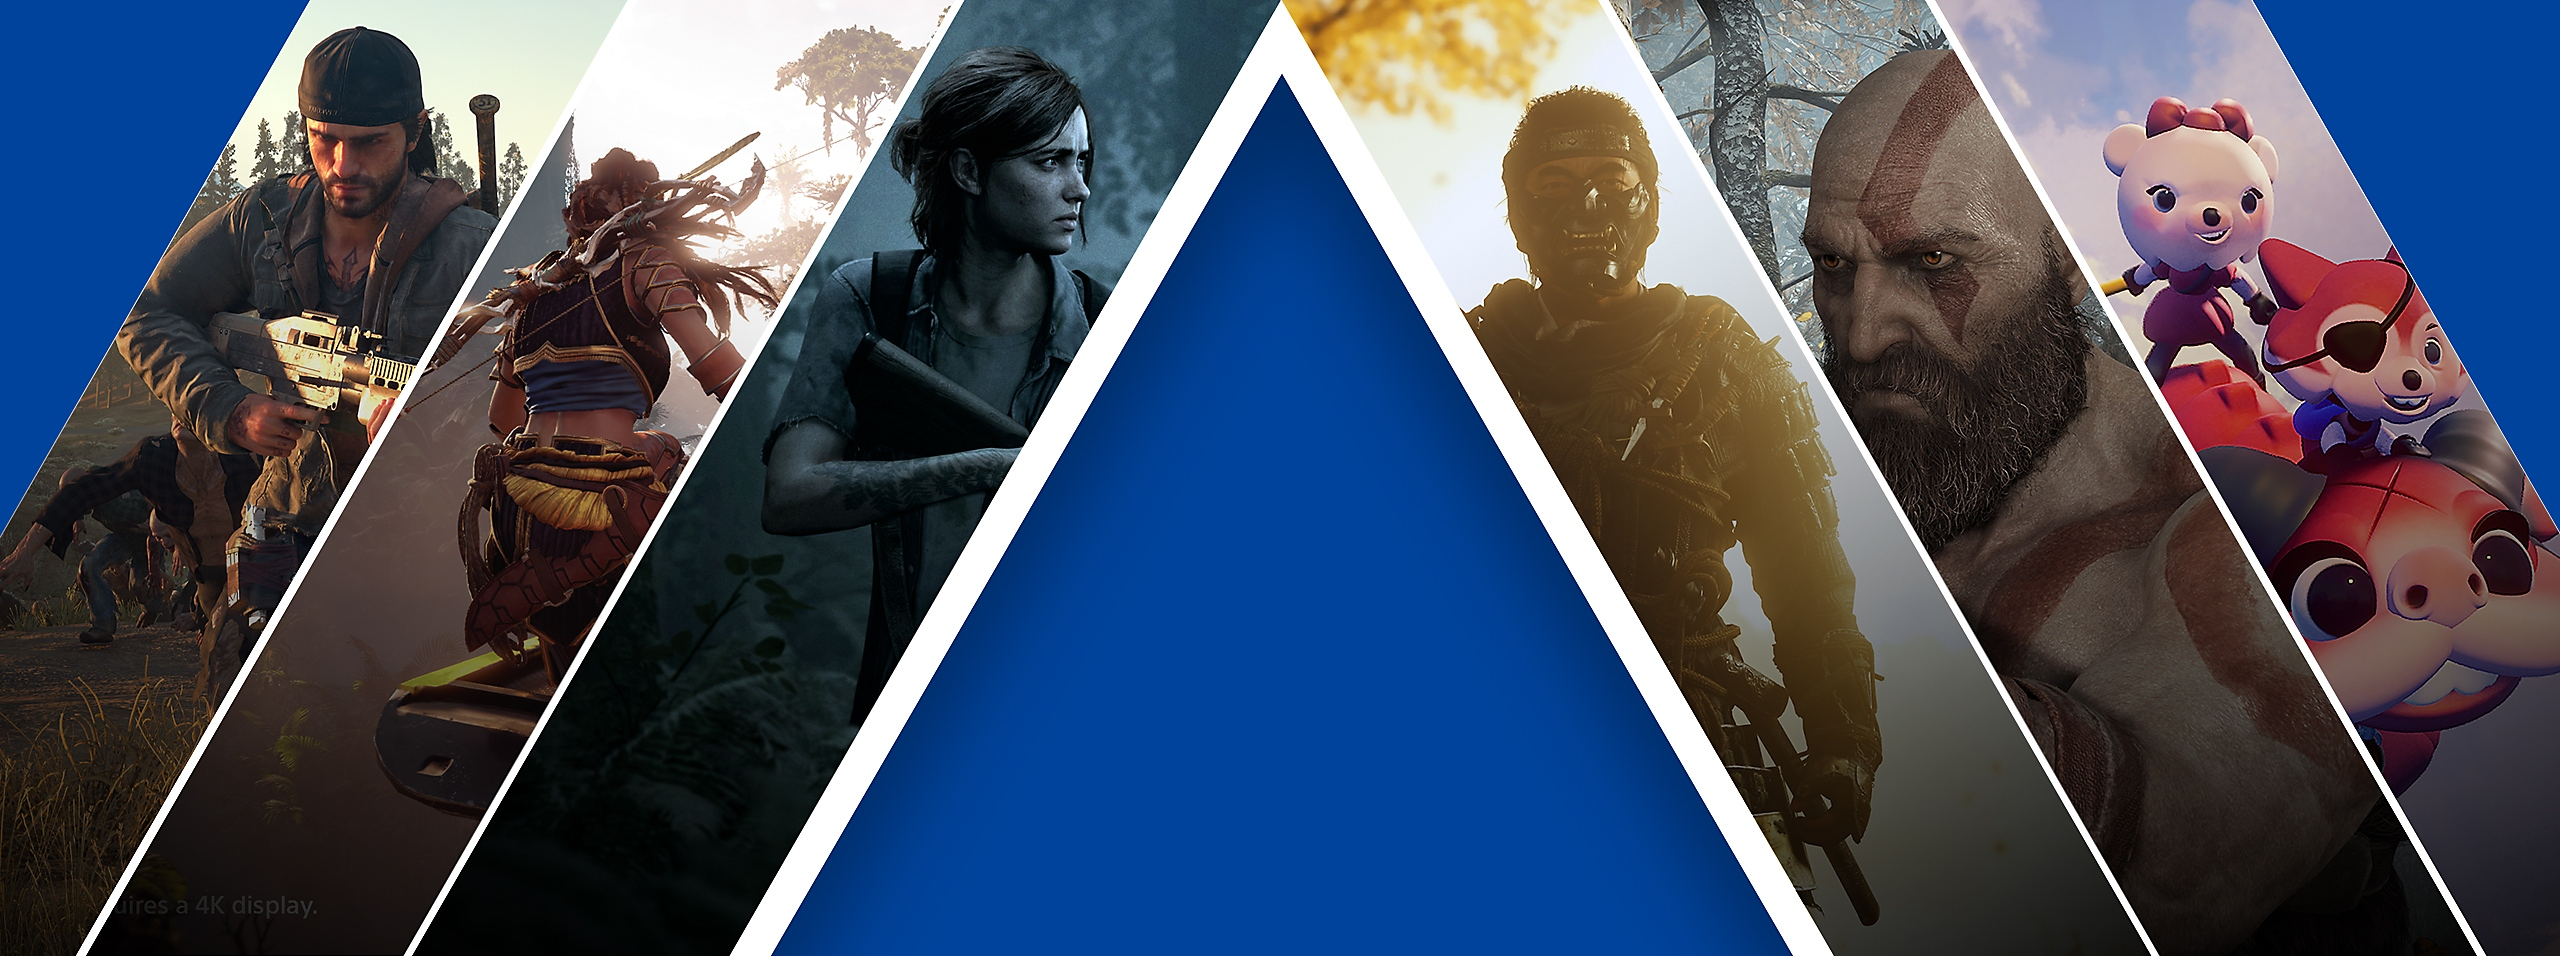 playstation 4 games promotional artwork